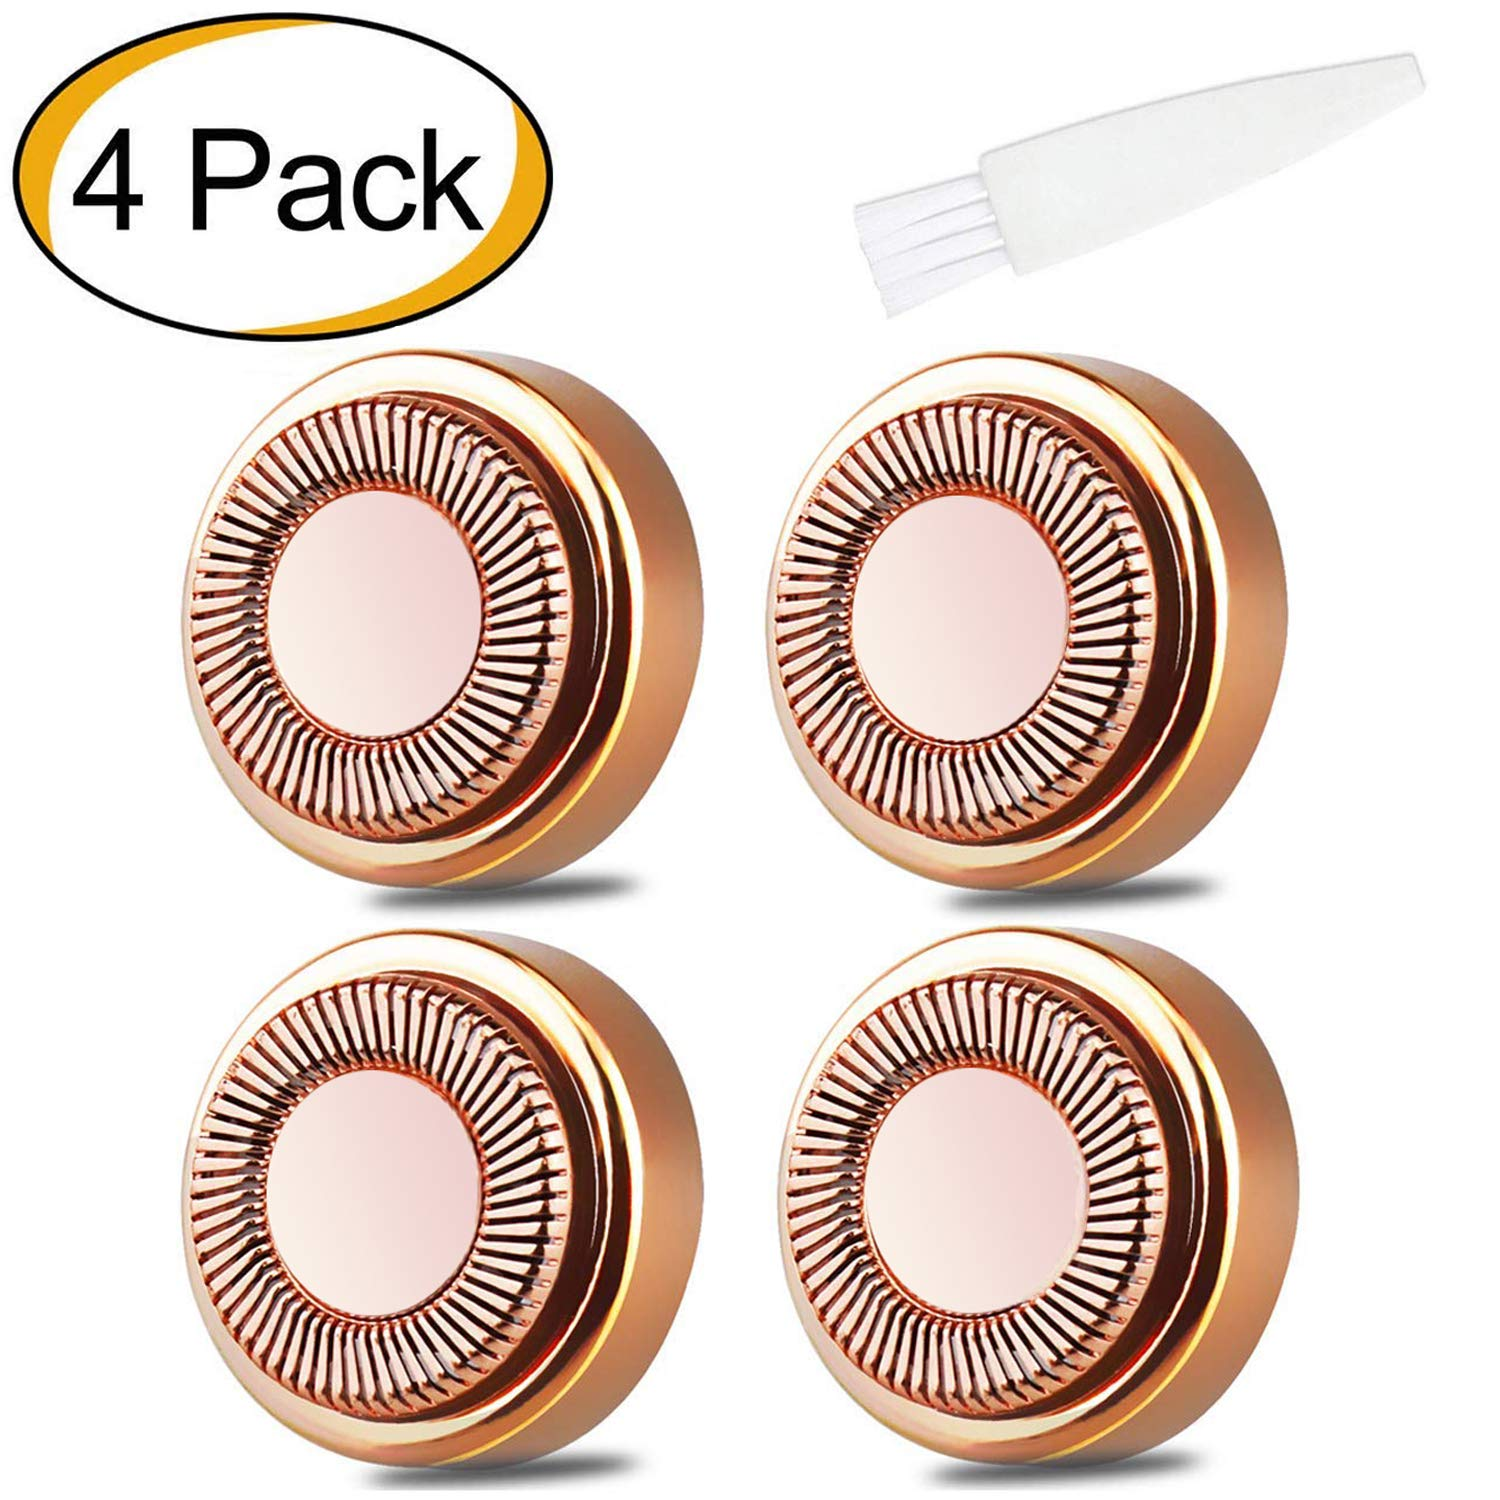 Facial Hair Remover Replacement Heads Flawless for Good Finishing and Well Touch 18K Gold Plated Blades Count 4 ENKOO